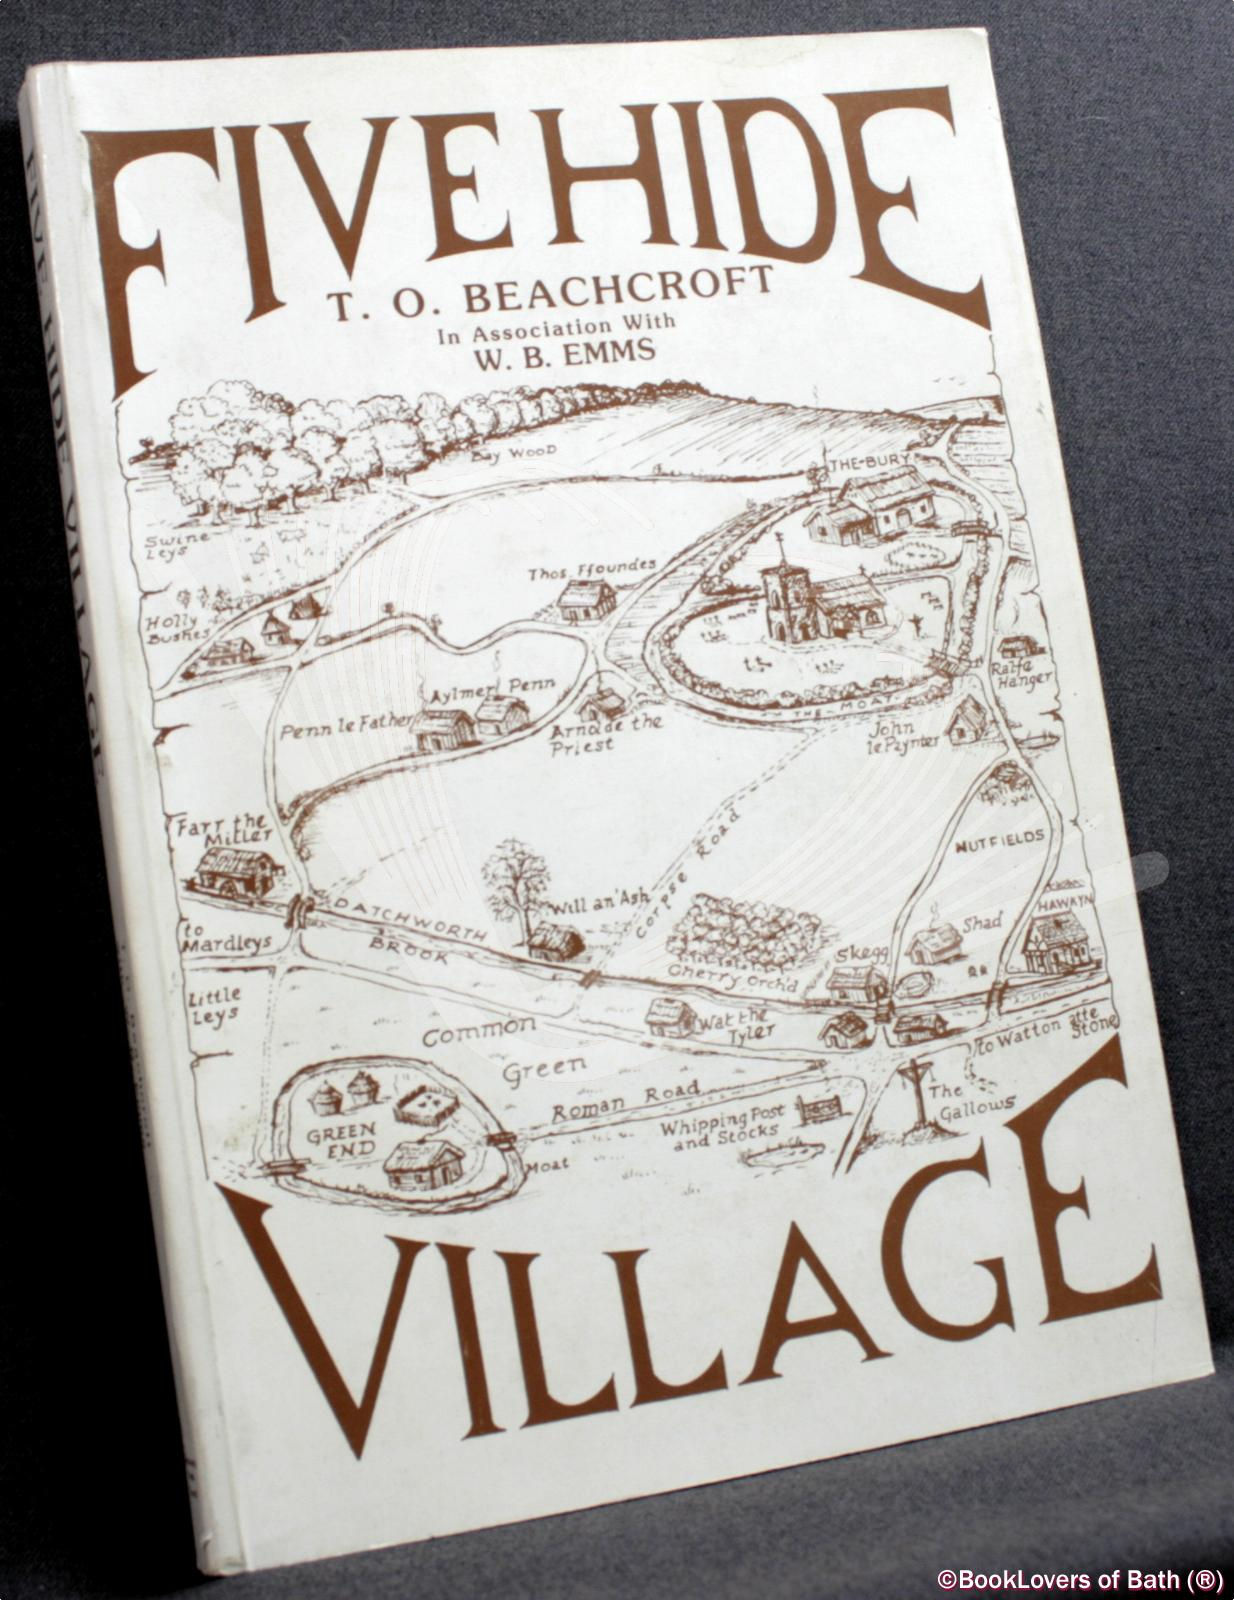 Five Hide Village: A History of Datchworth in Hertfordshire - T. O. Beachcroft In Association with W. B. Emms